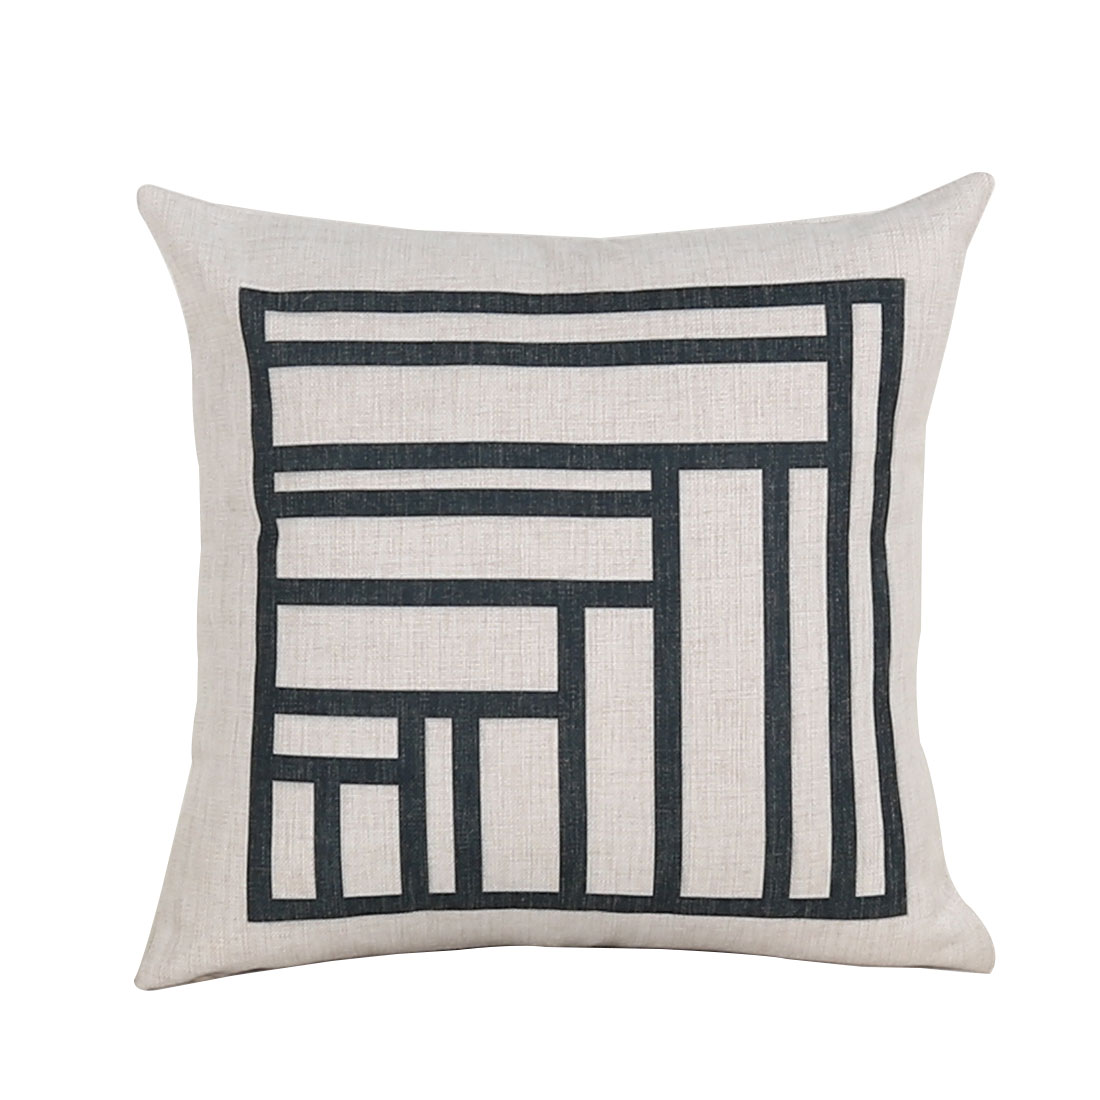 Sofa Cotton Linen Square Pattern Square Design Waist Throw Cushion Pillow Cover